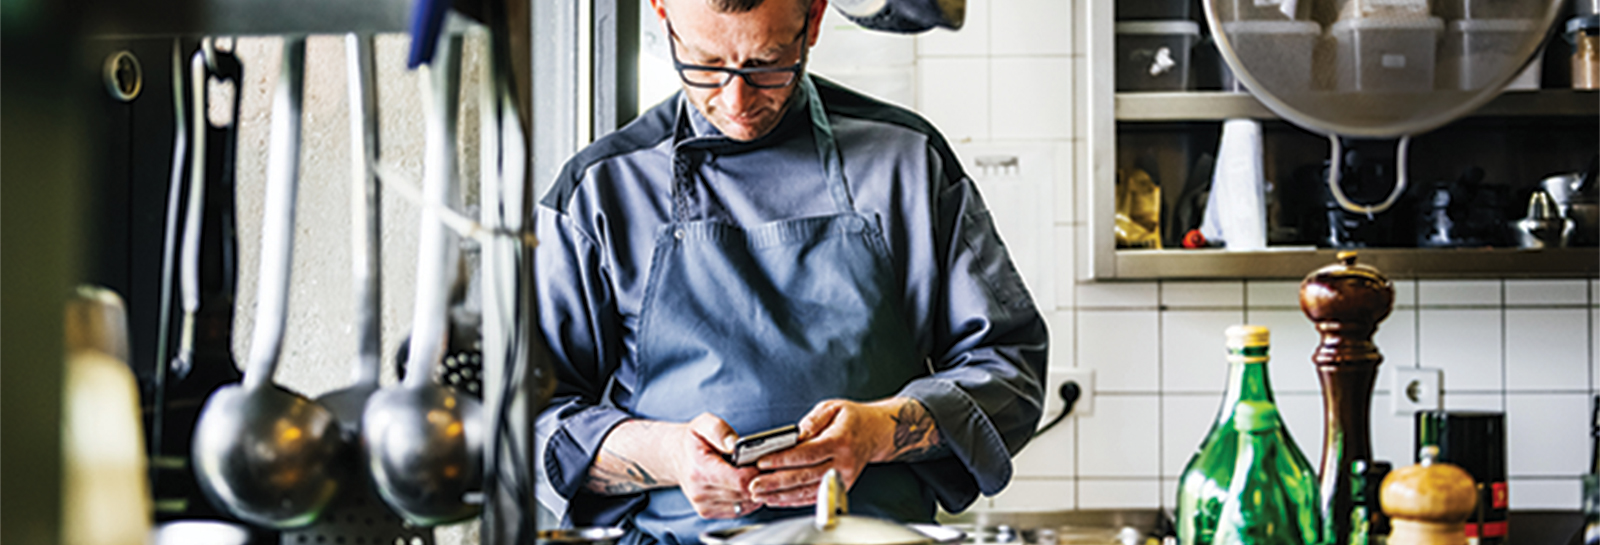 a chef texting on his phone in a kitchen